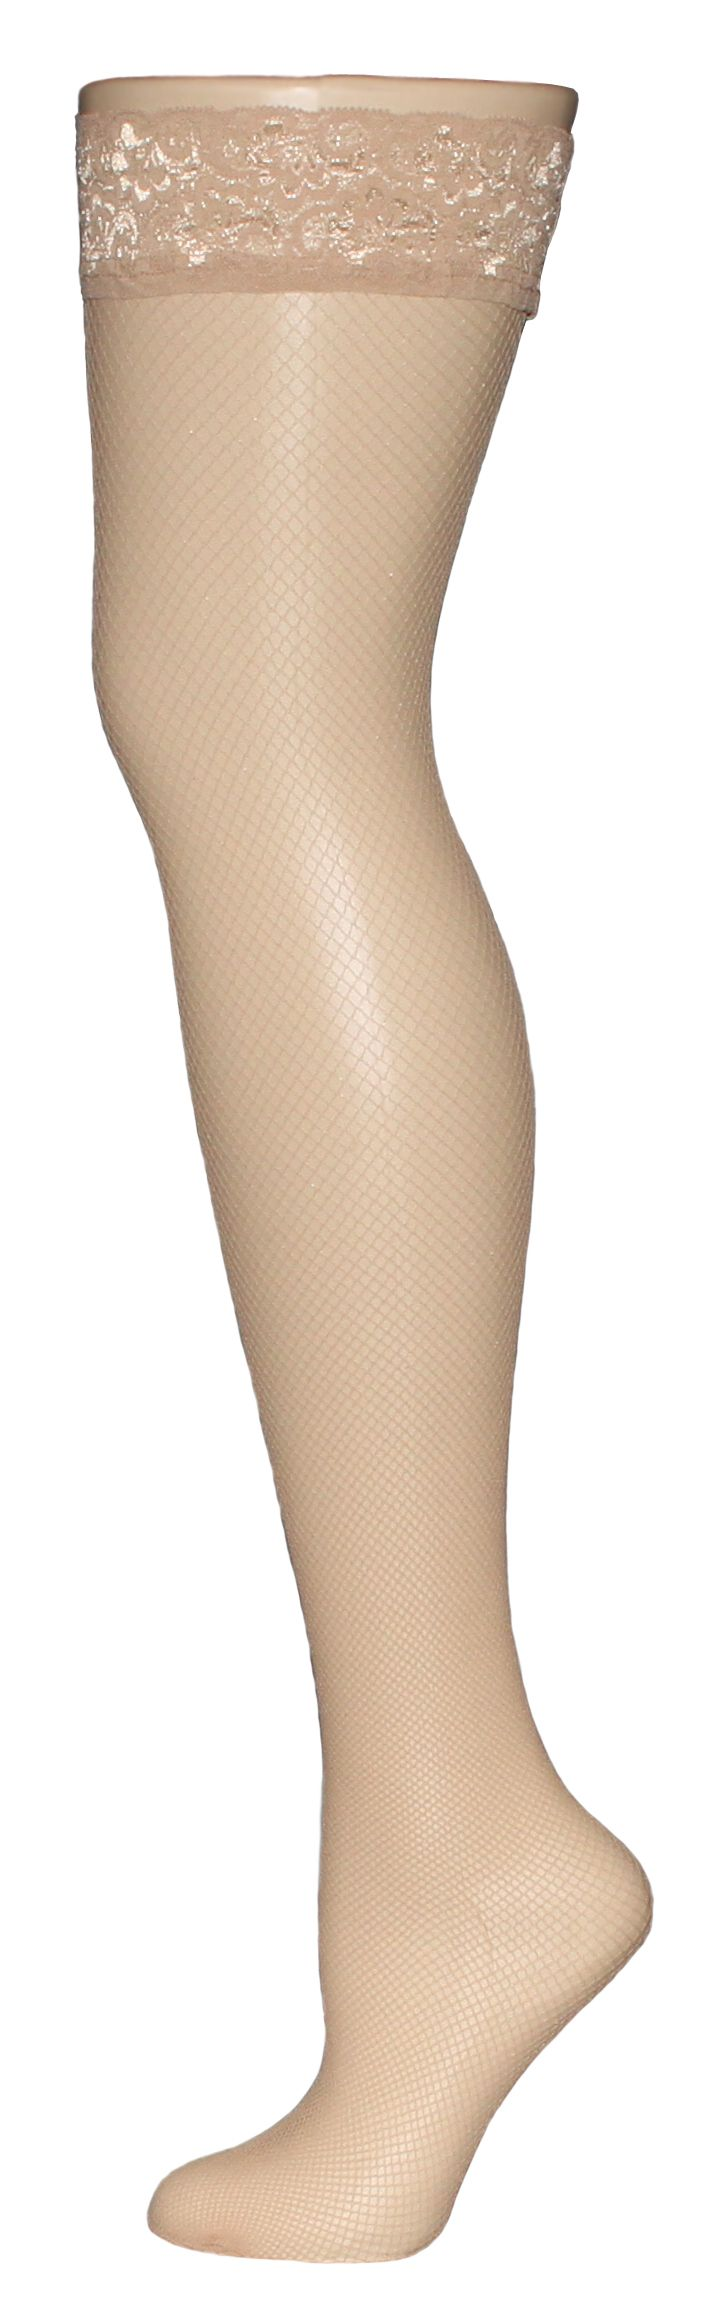 GIORGIA is our classic micro fishnet thigh highs. With this luxurious pair of hosiery, Giorgia will complement your party dress, work attire and lingerie set. GIORGIA micro fishnet features a comfortable laced band which will gently secure these thigh highs on your leg. Show the world that you're not boring by wearing GIORGIA. This pair of women's stocking is available in Black and Honey.  VienneMilano thigh high stockings do not require a garter belt.